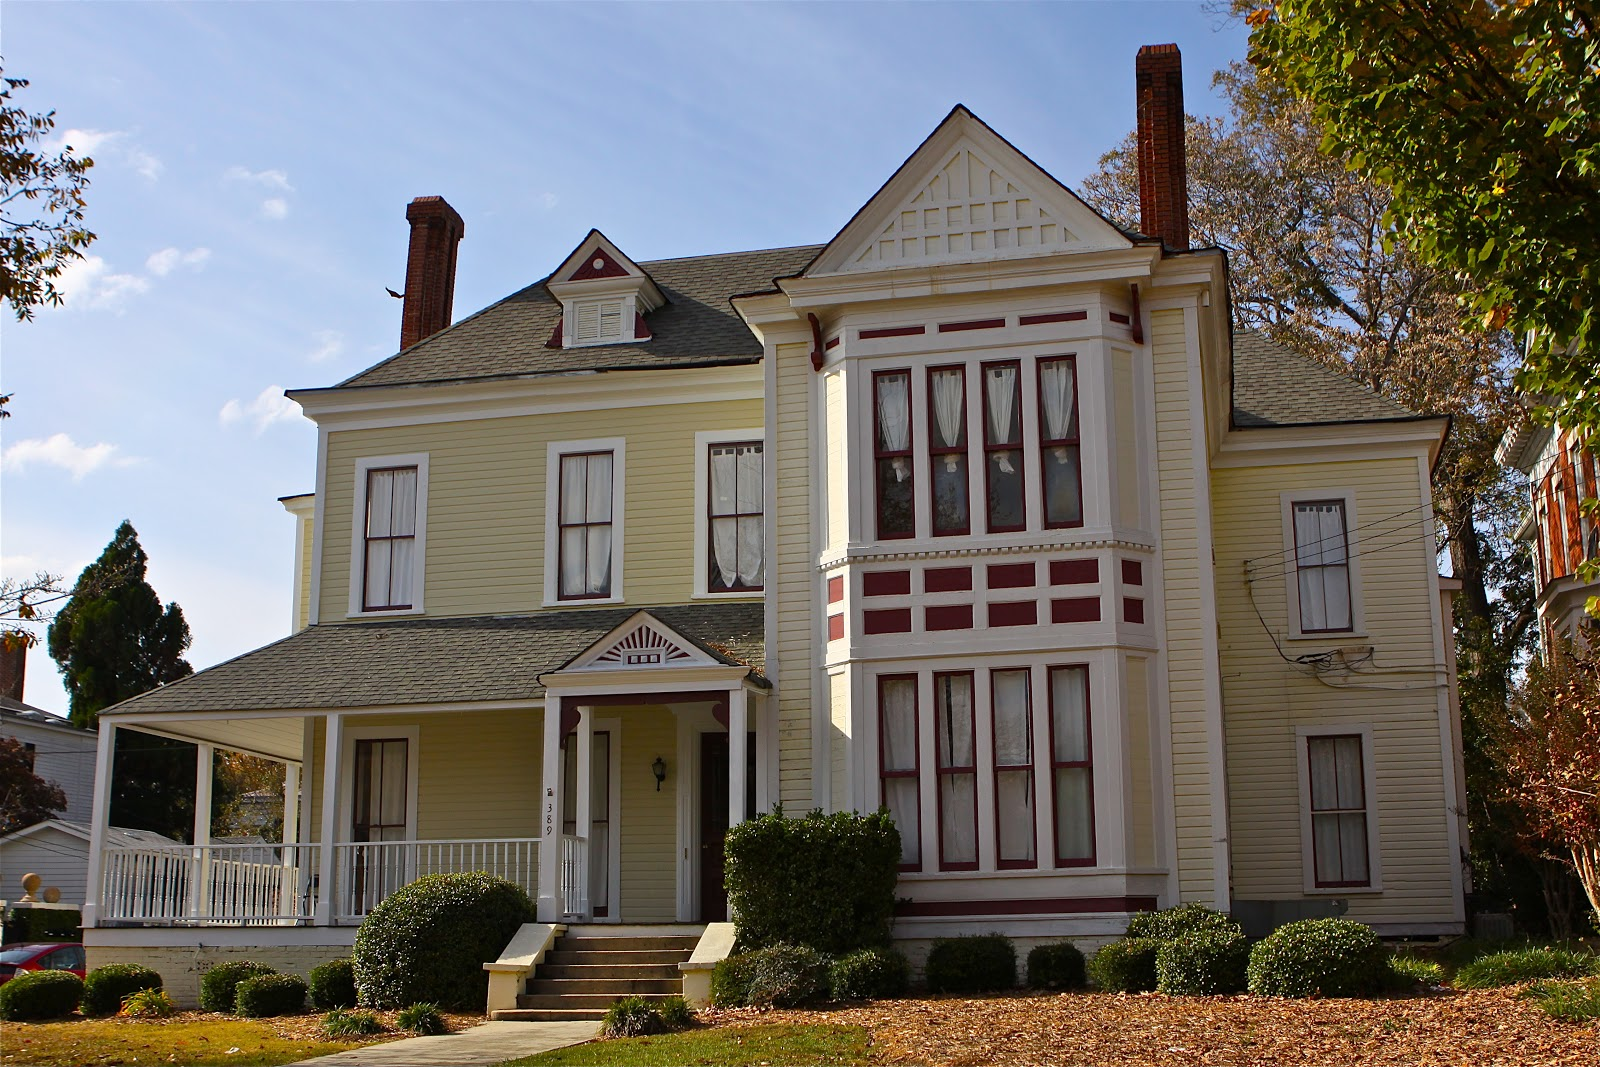 Sweet Southern Days: Historic Places in Macon, Georgia